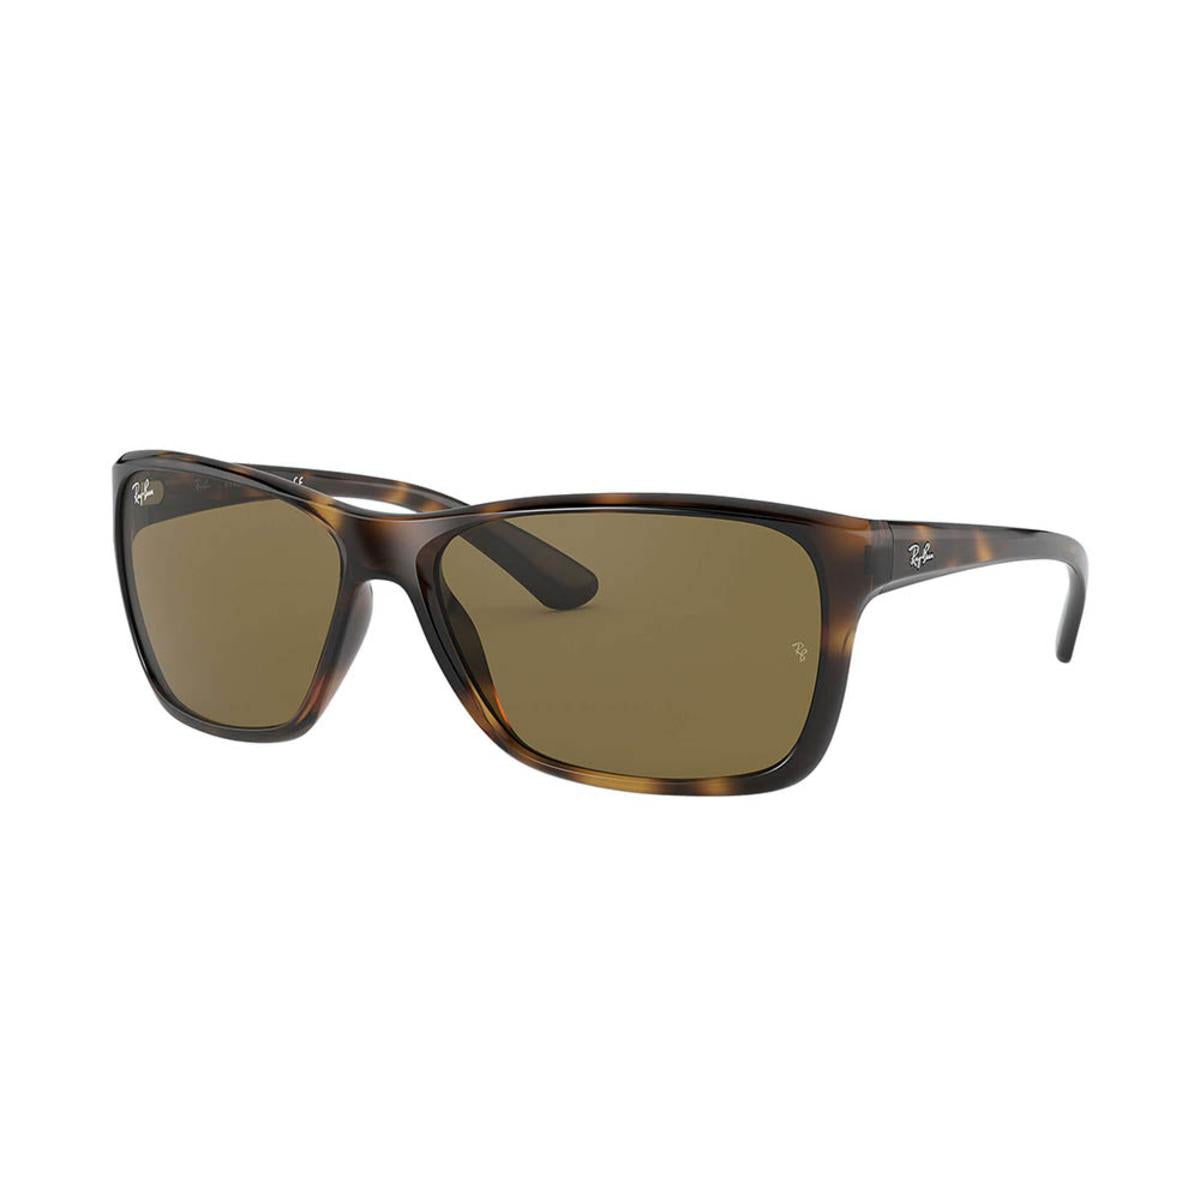 Ray-Ban RB4331 Sunglasses with Tortoise Frame - Dark Brown Classic B-15 Lens